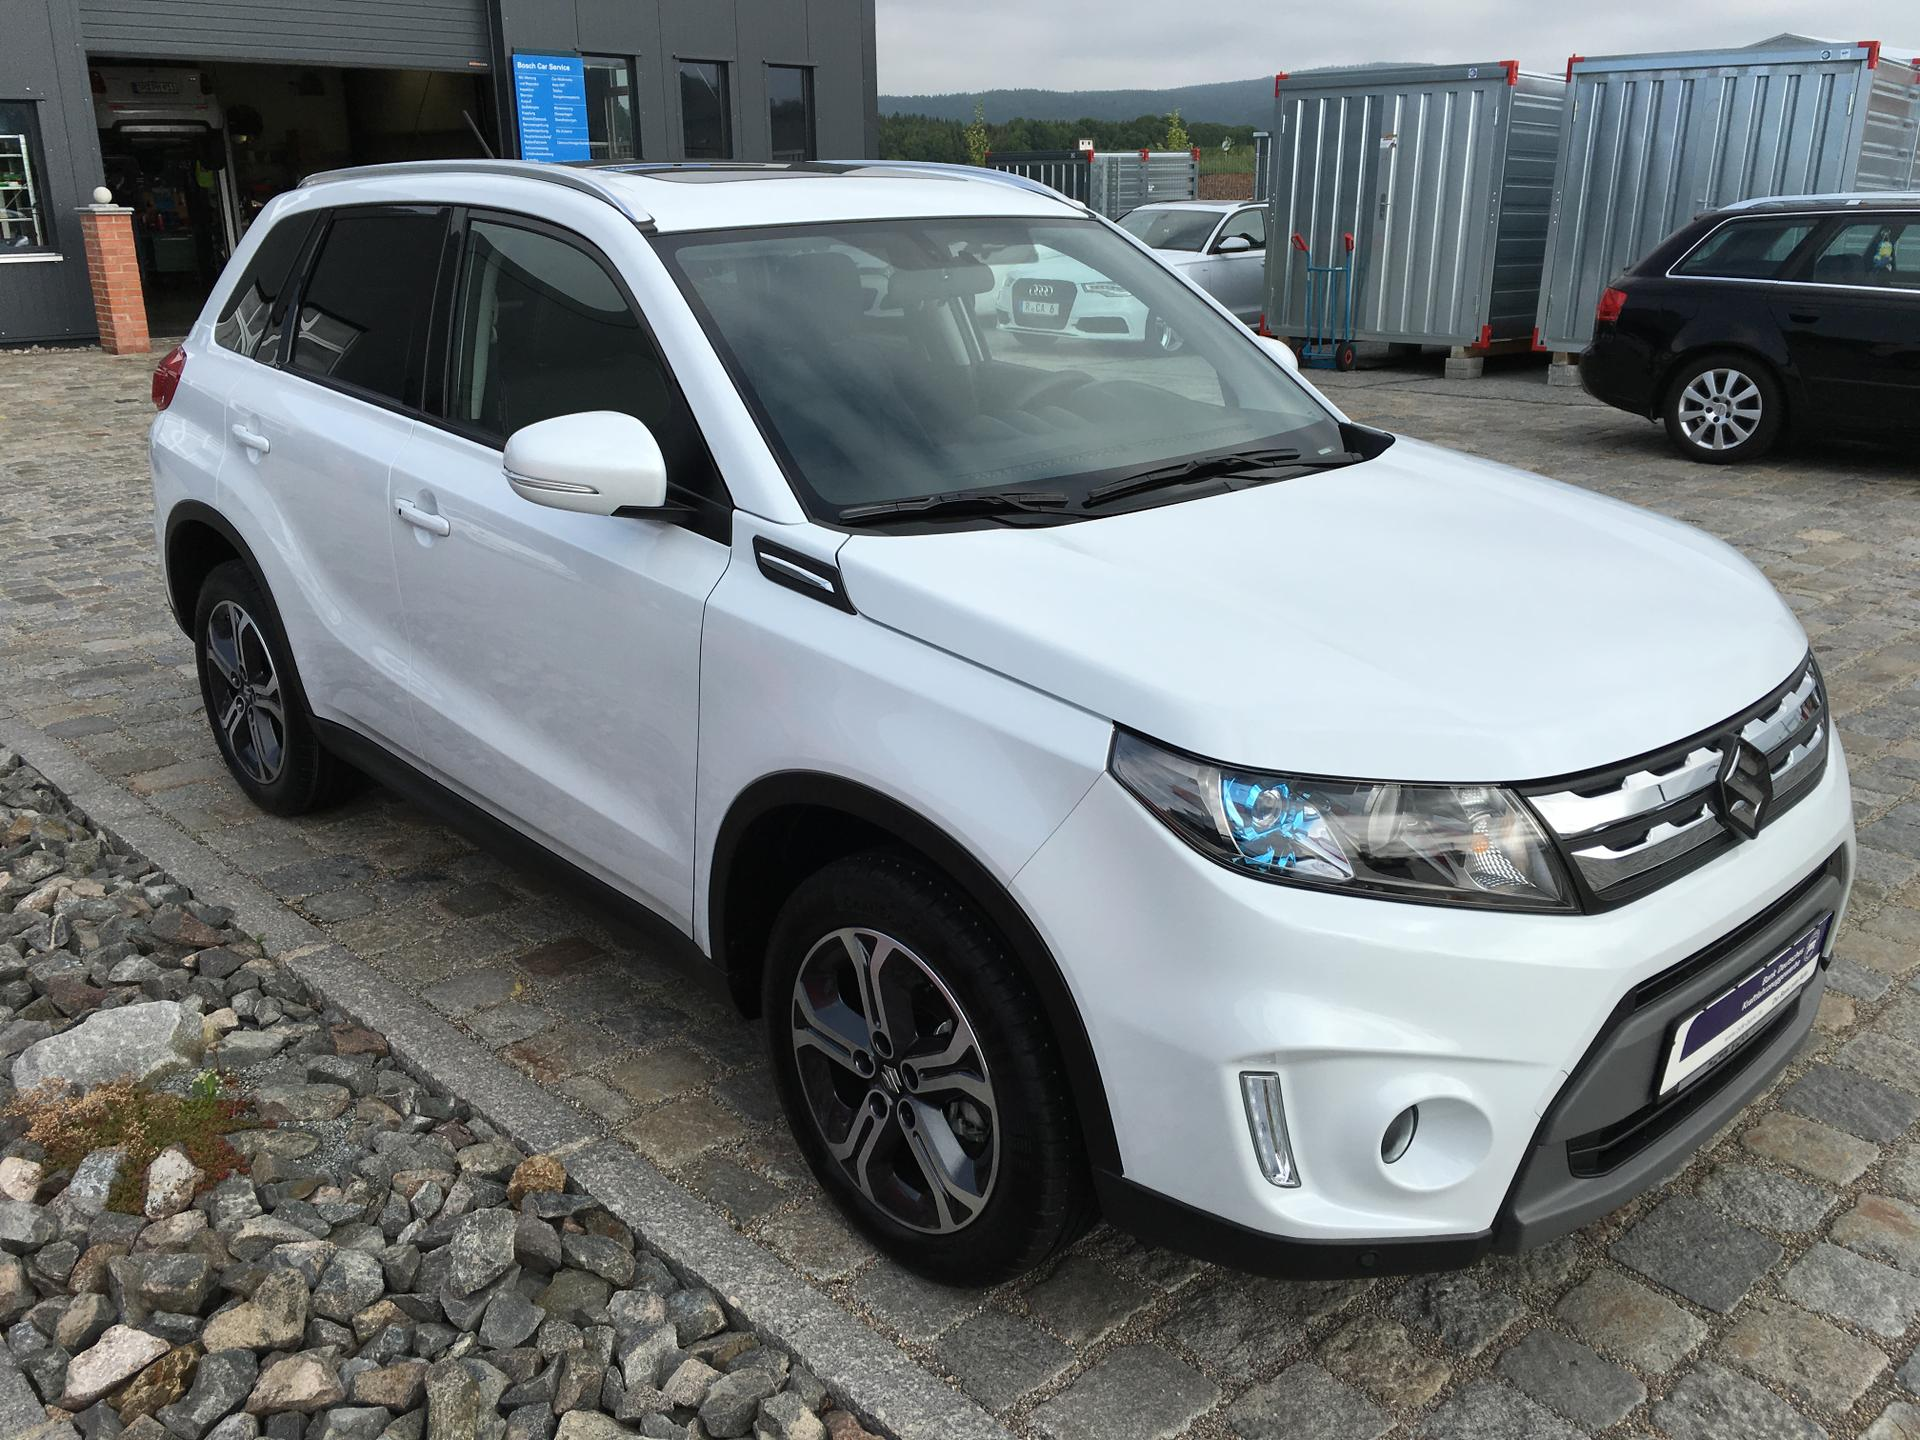 suzuki vitara 1 6 ddis 4wd automatik glx navi pano led 17 39 39 leder sofort diesel wei met. Black Bedroom Furniture Sets. Home Design Ideas